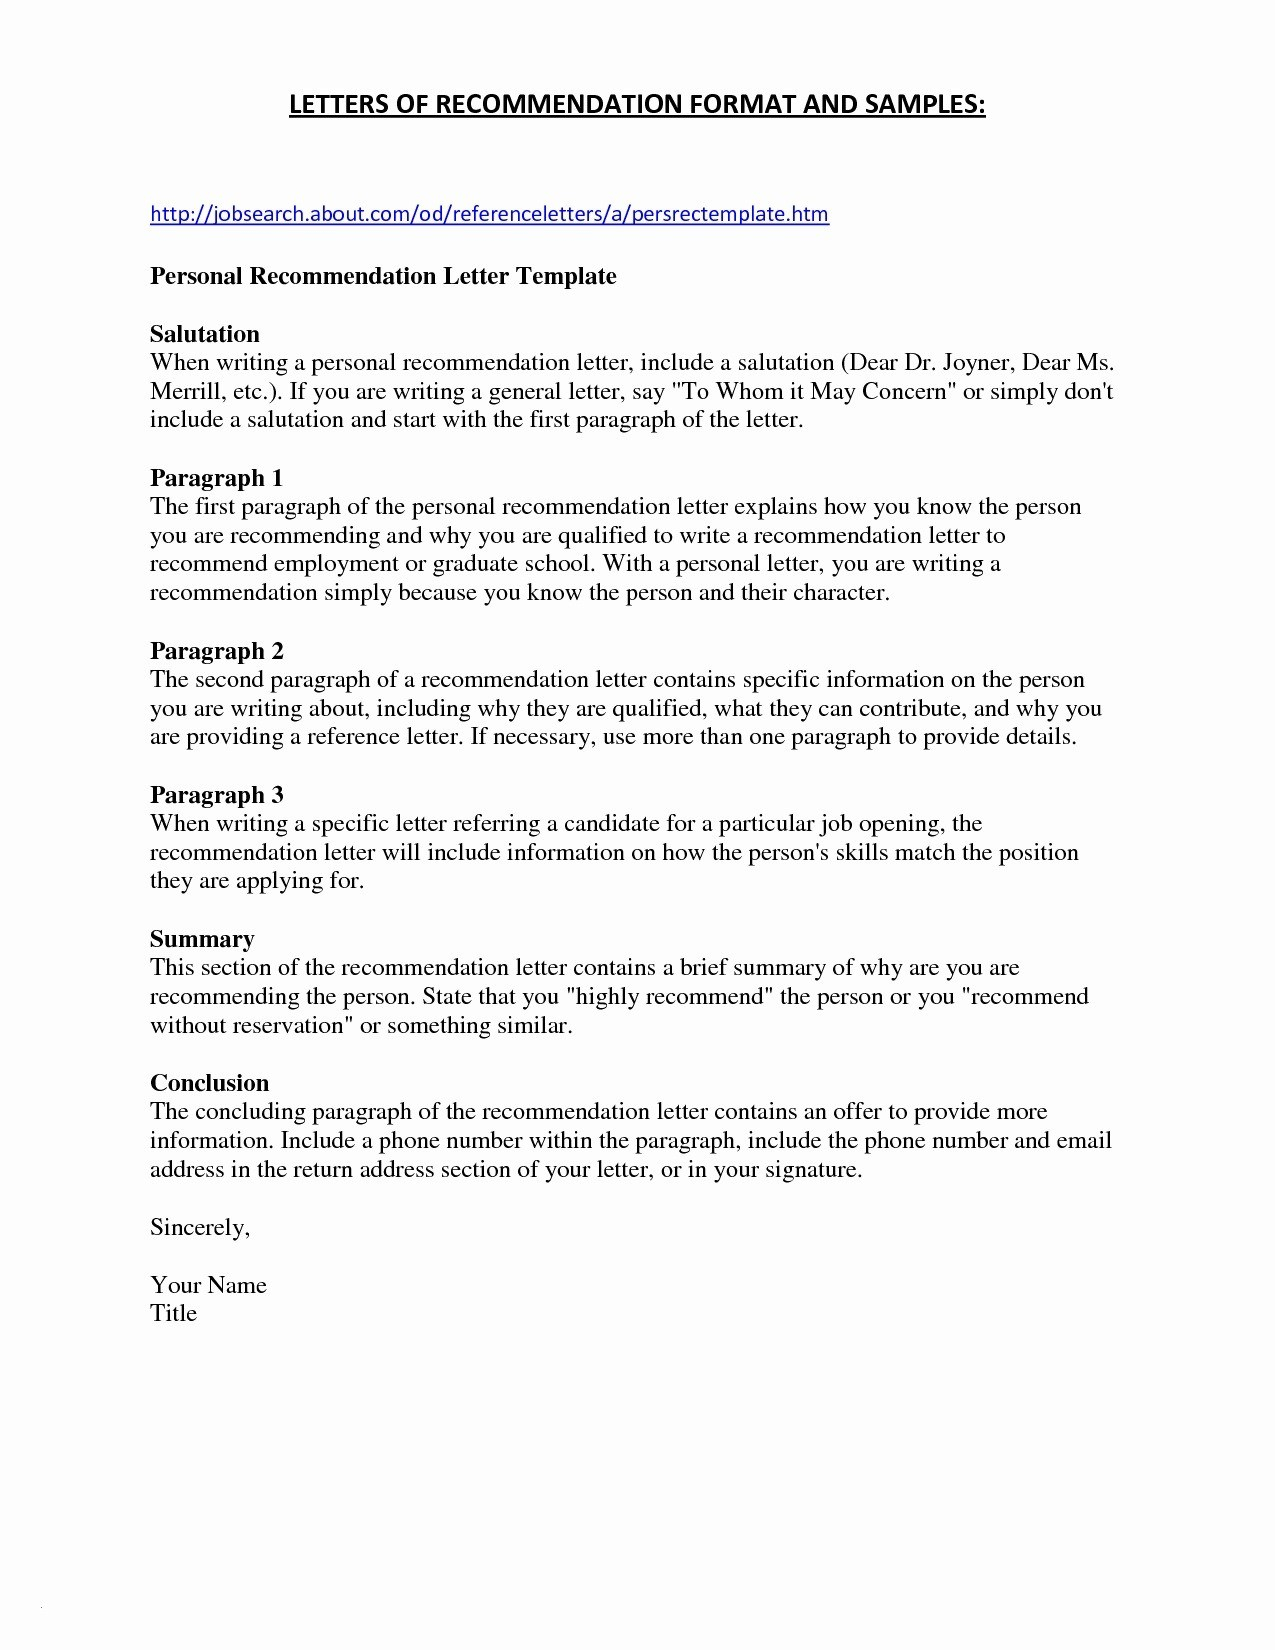 microsoft word letter template